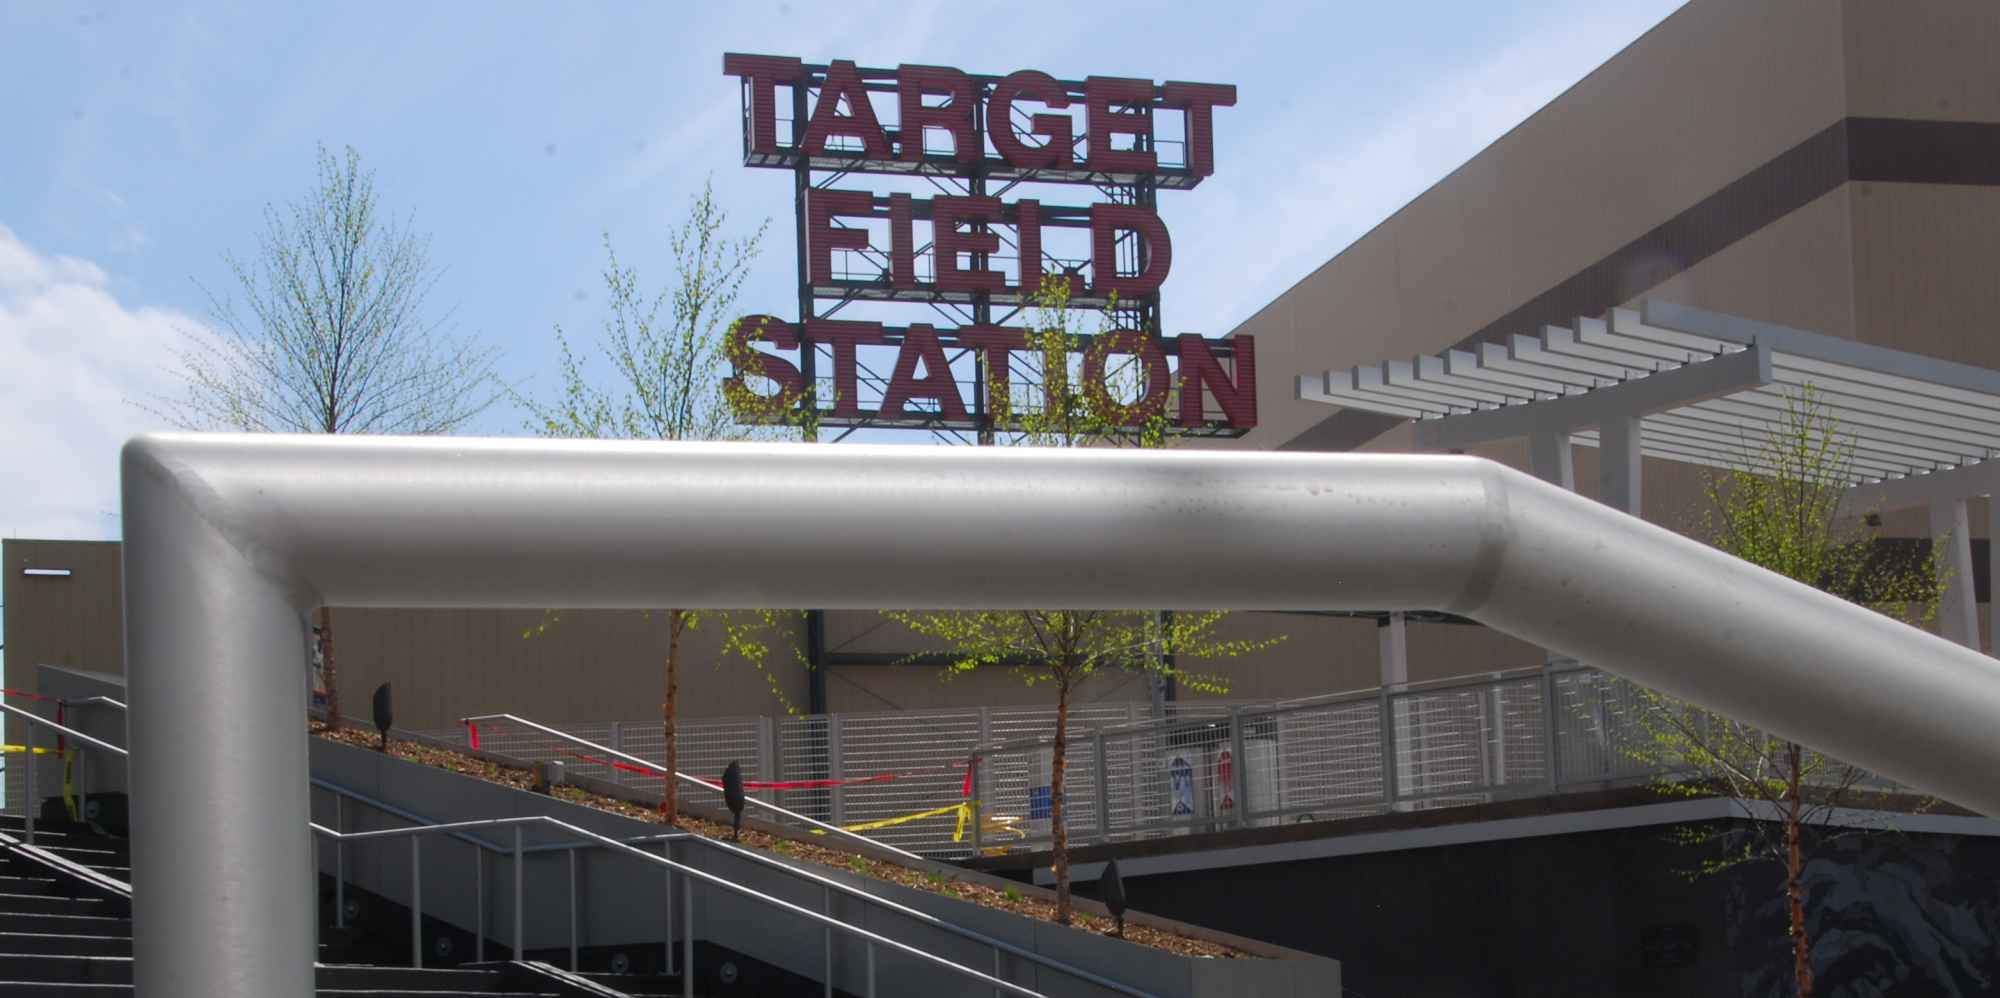 interchangetargetfield.jpg